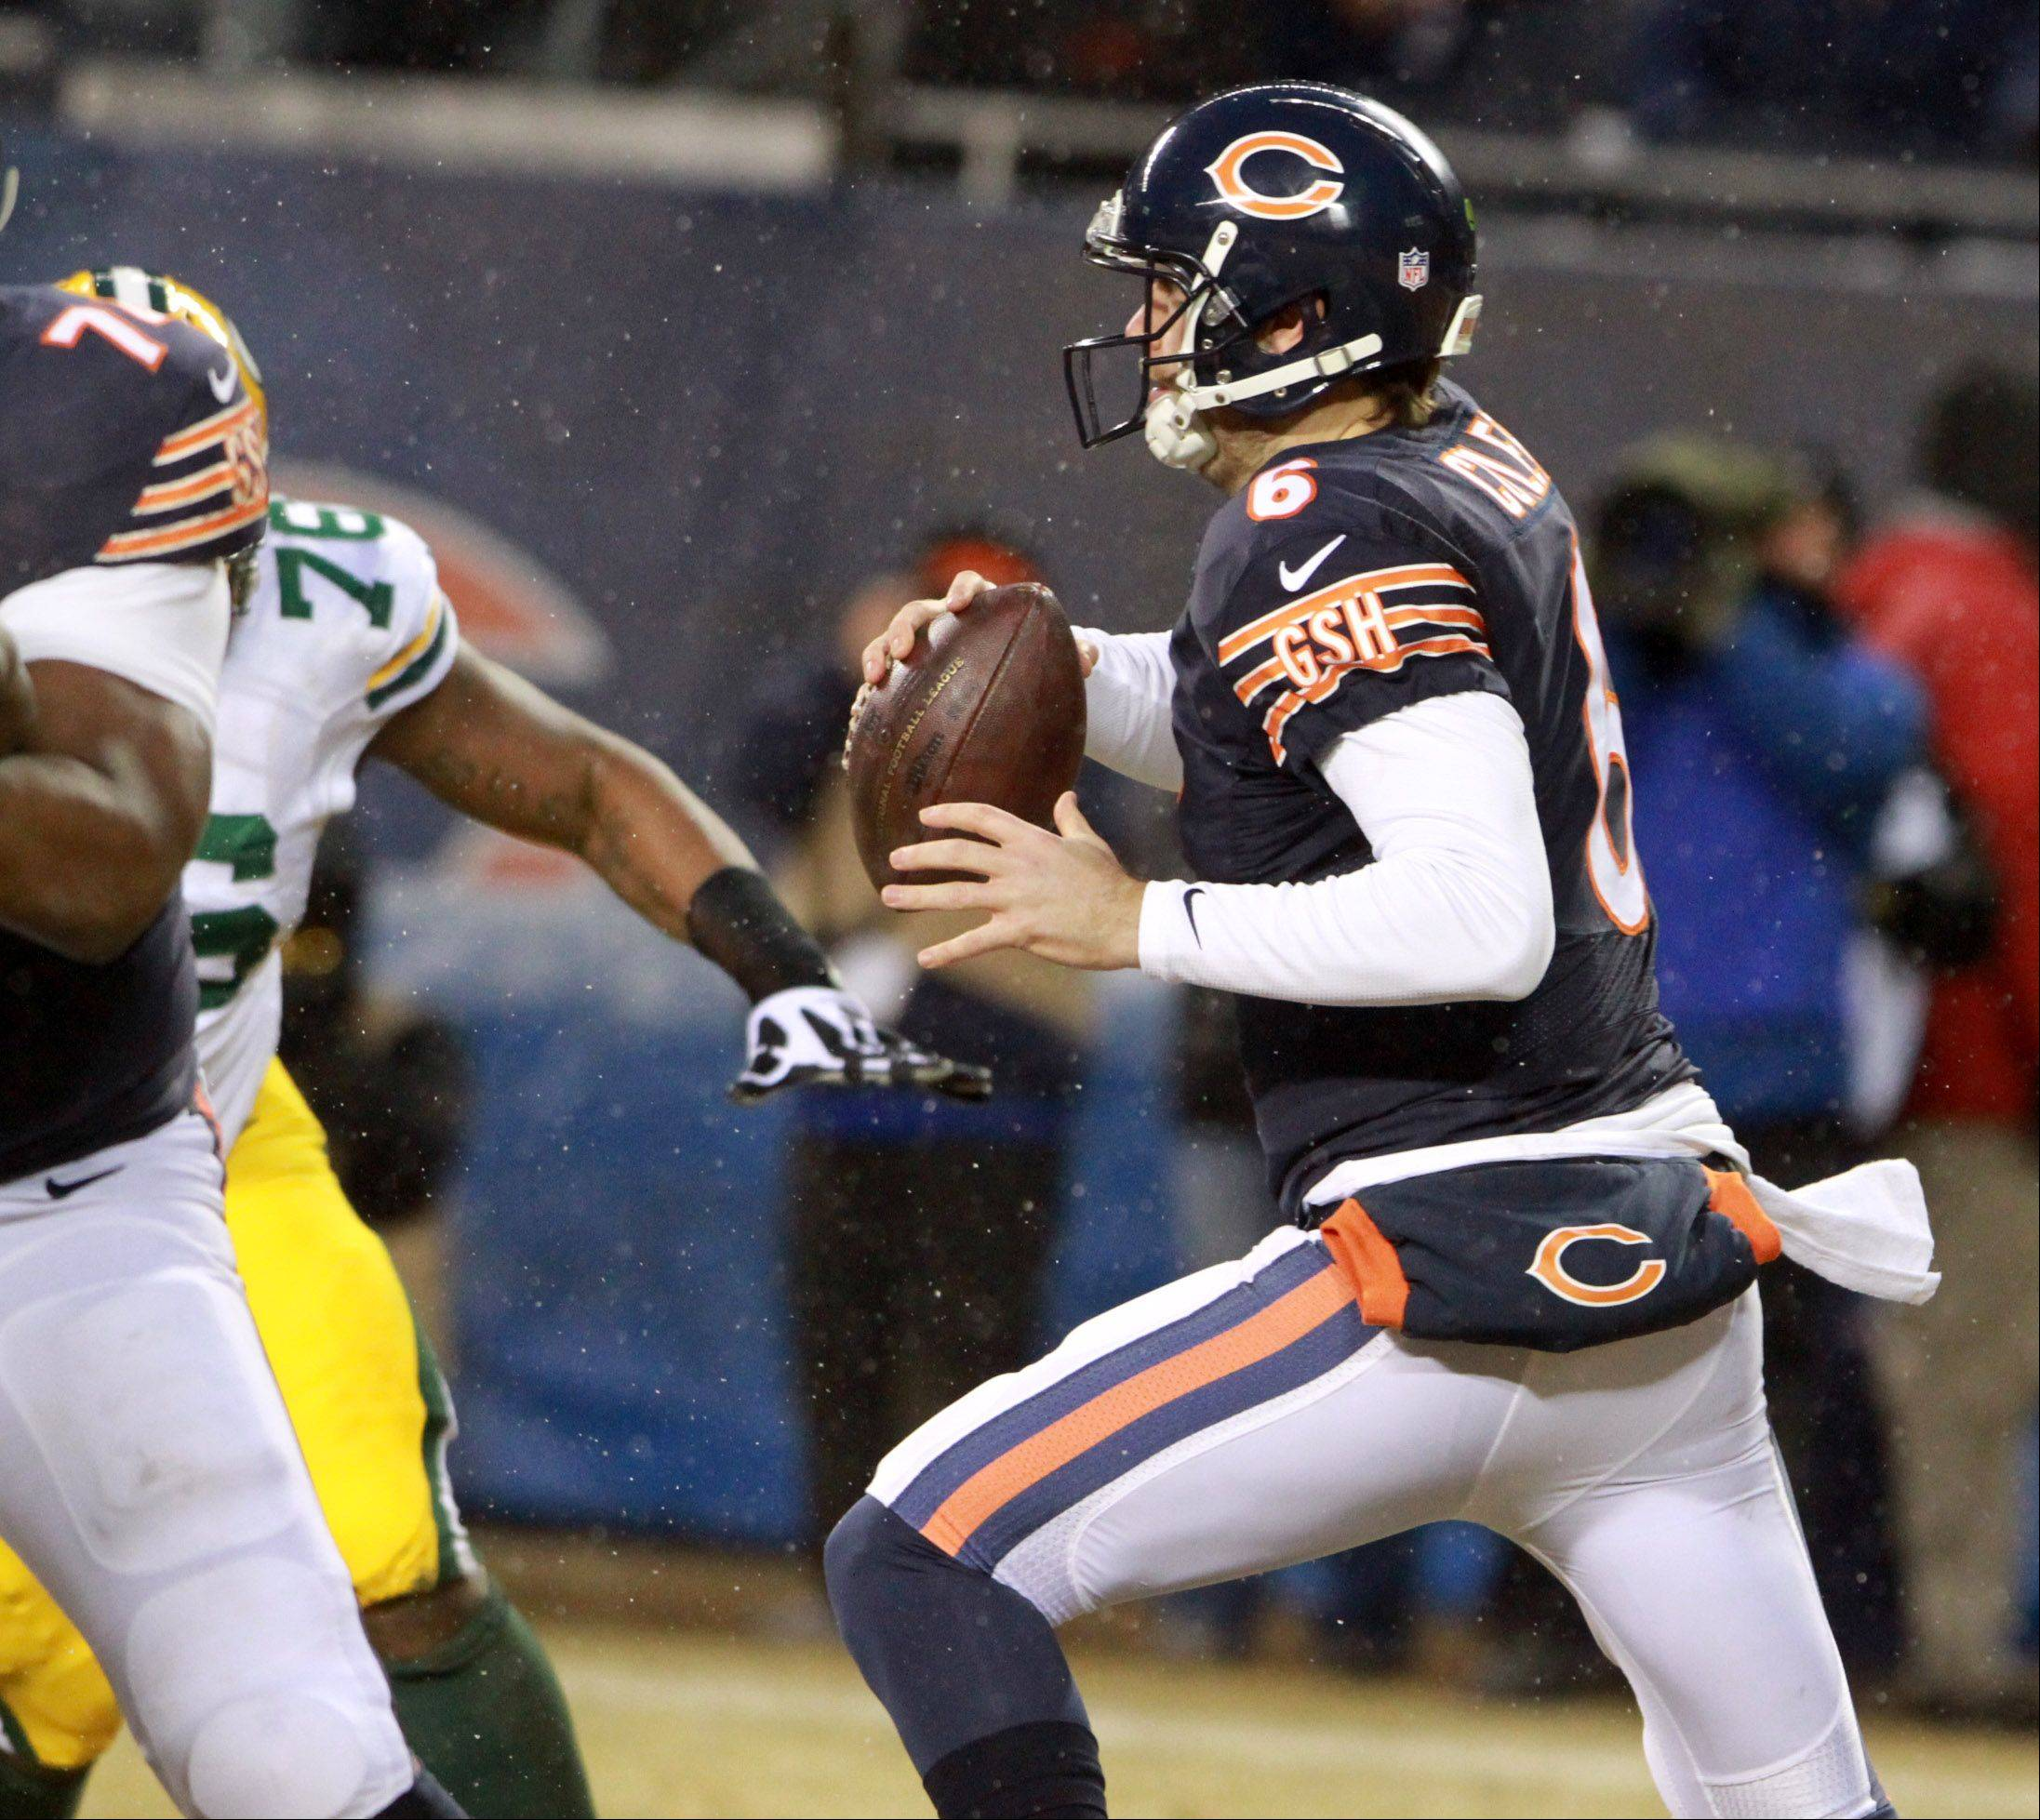 Chicago Bears quarterback Jay Cutler scrambles with the ball against the Green Bay Packers on Sunday at Soldier Field in Chicago.